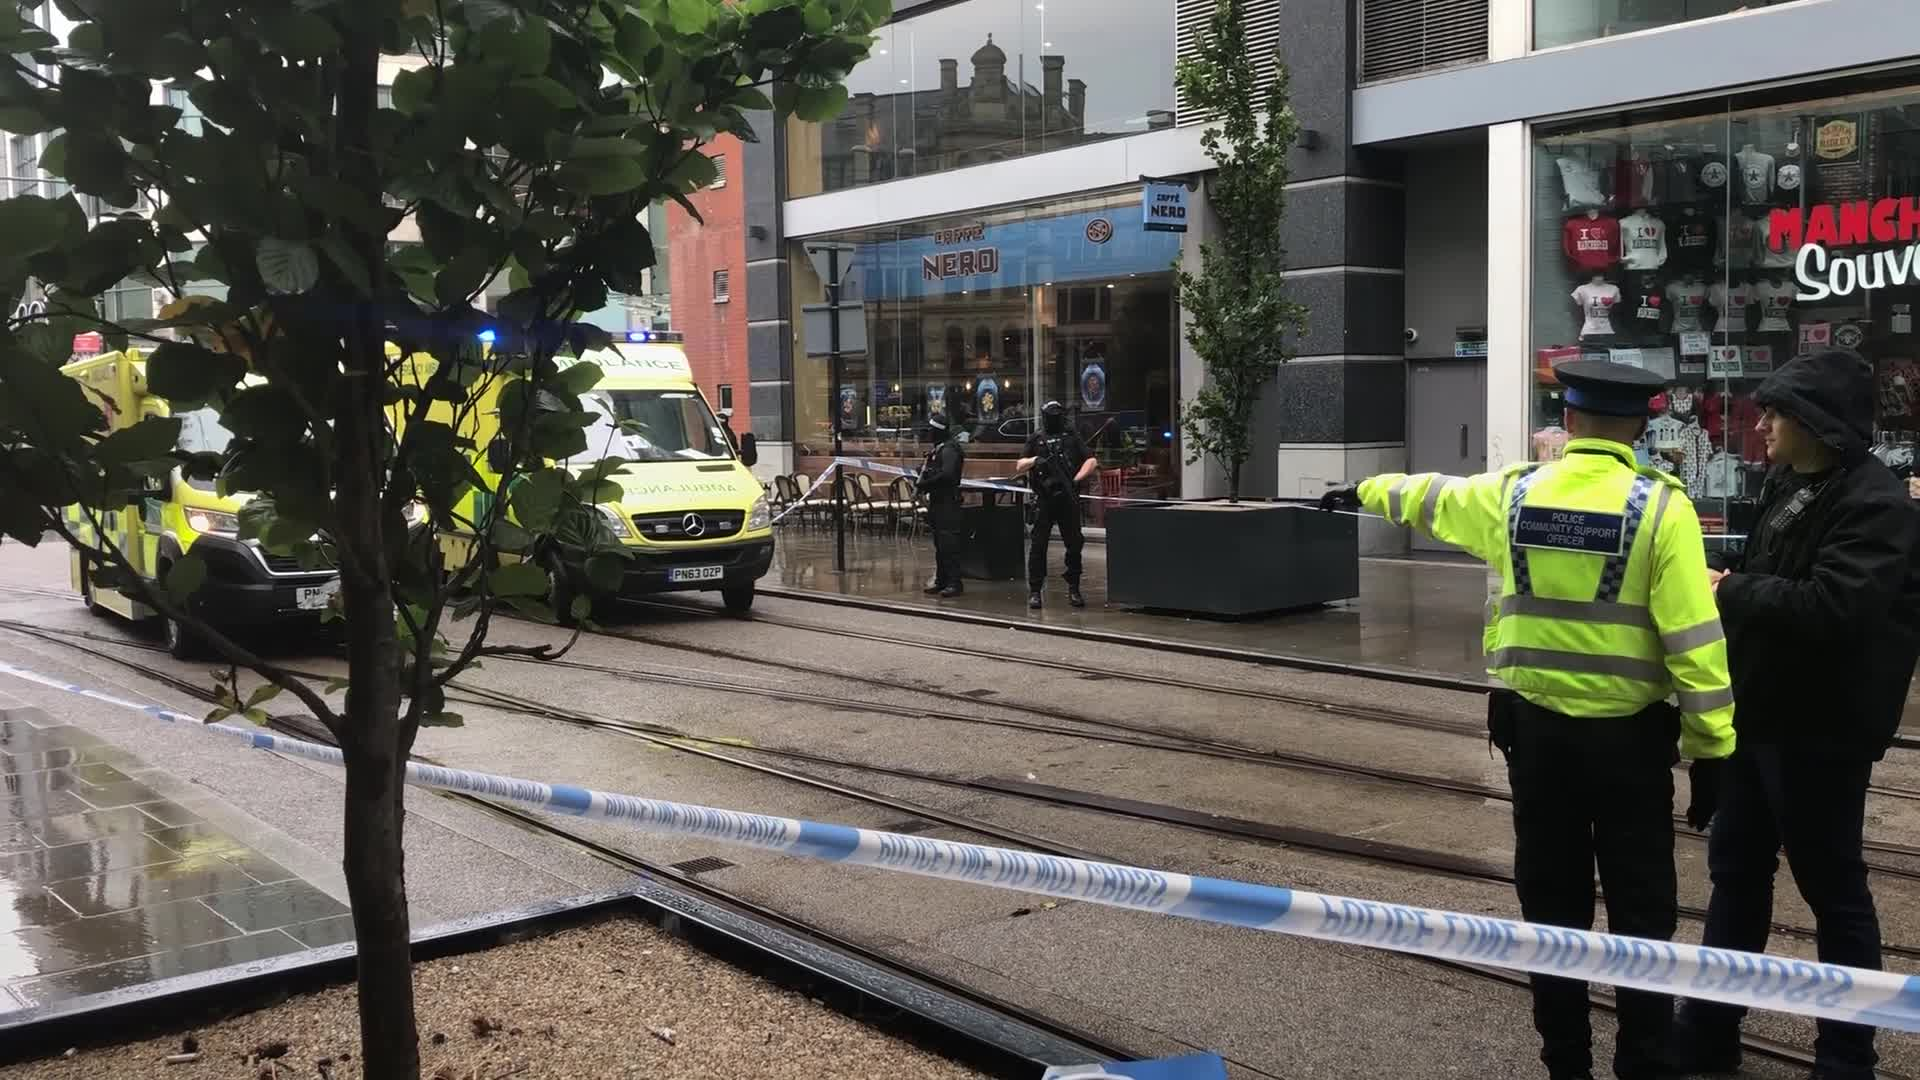 Manchester Knife Attack Appears To Be 'Mental Health-Related', Mayor Says